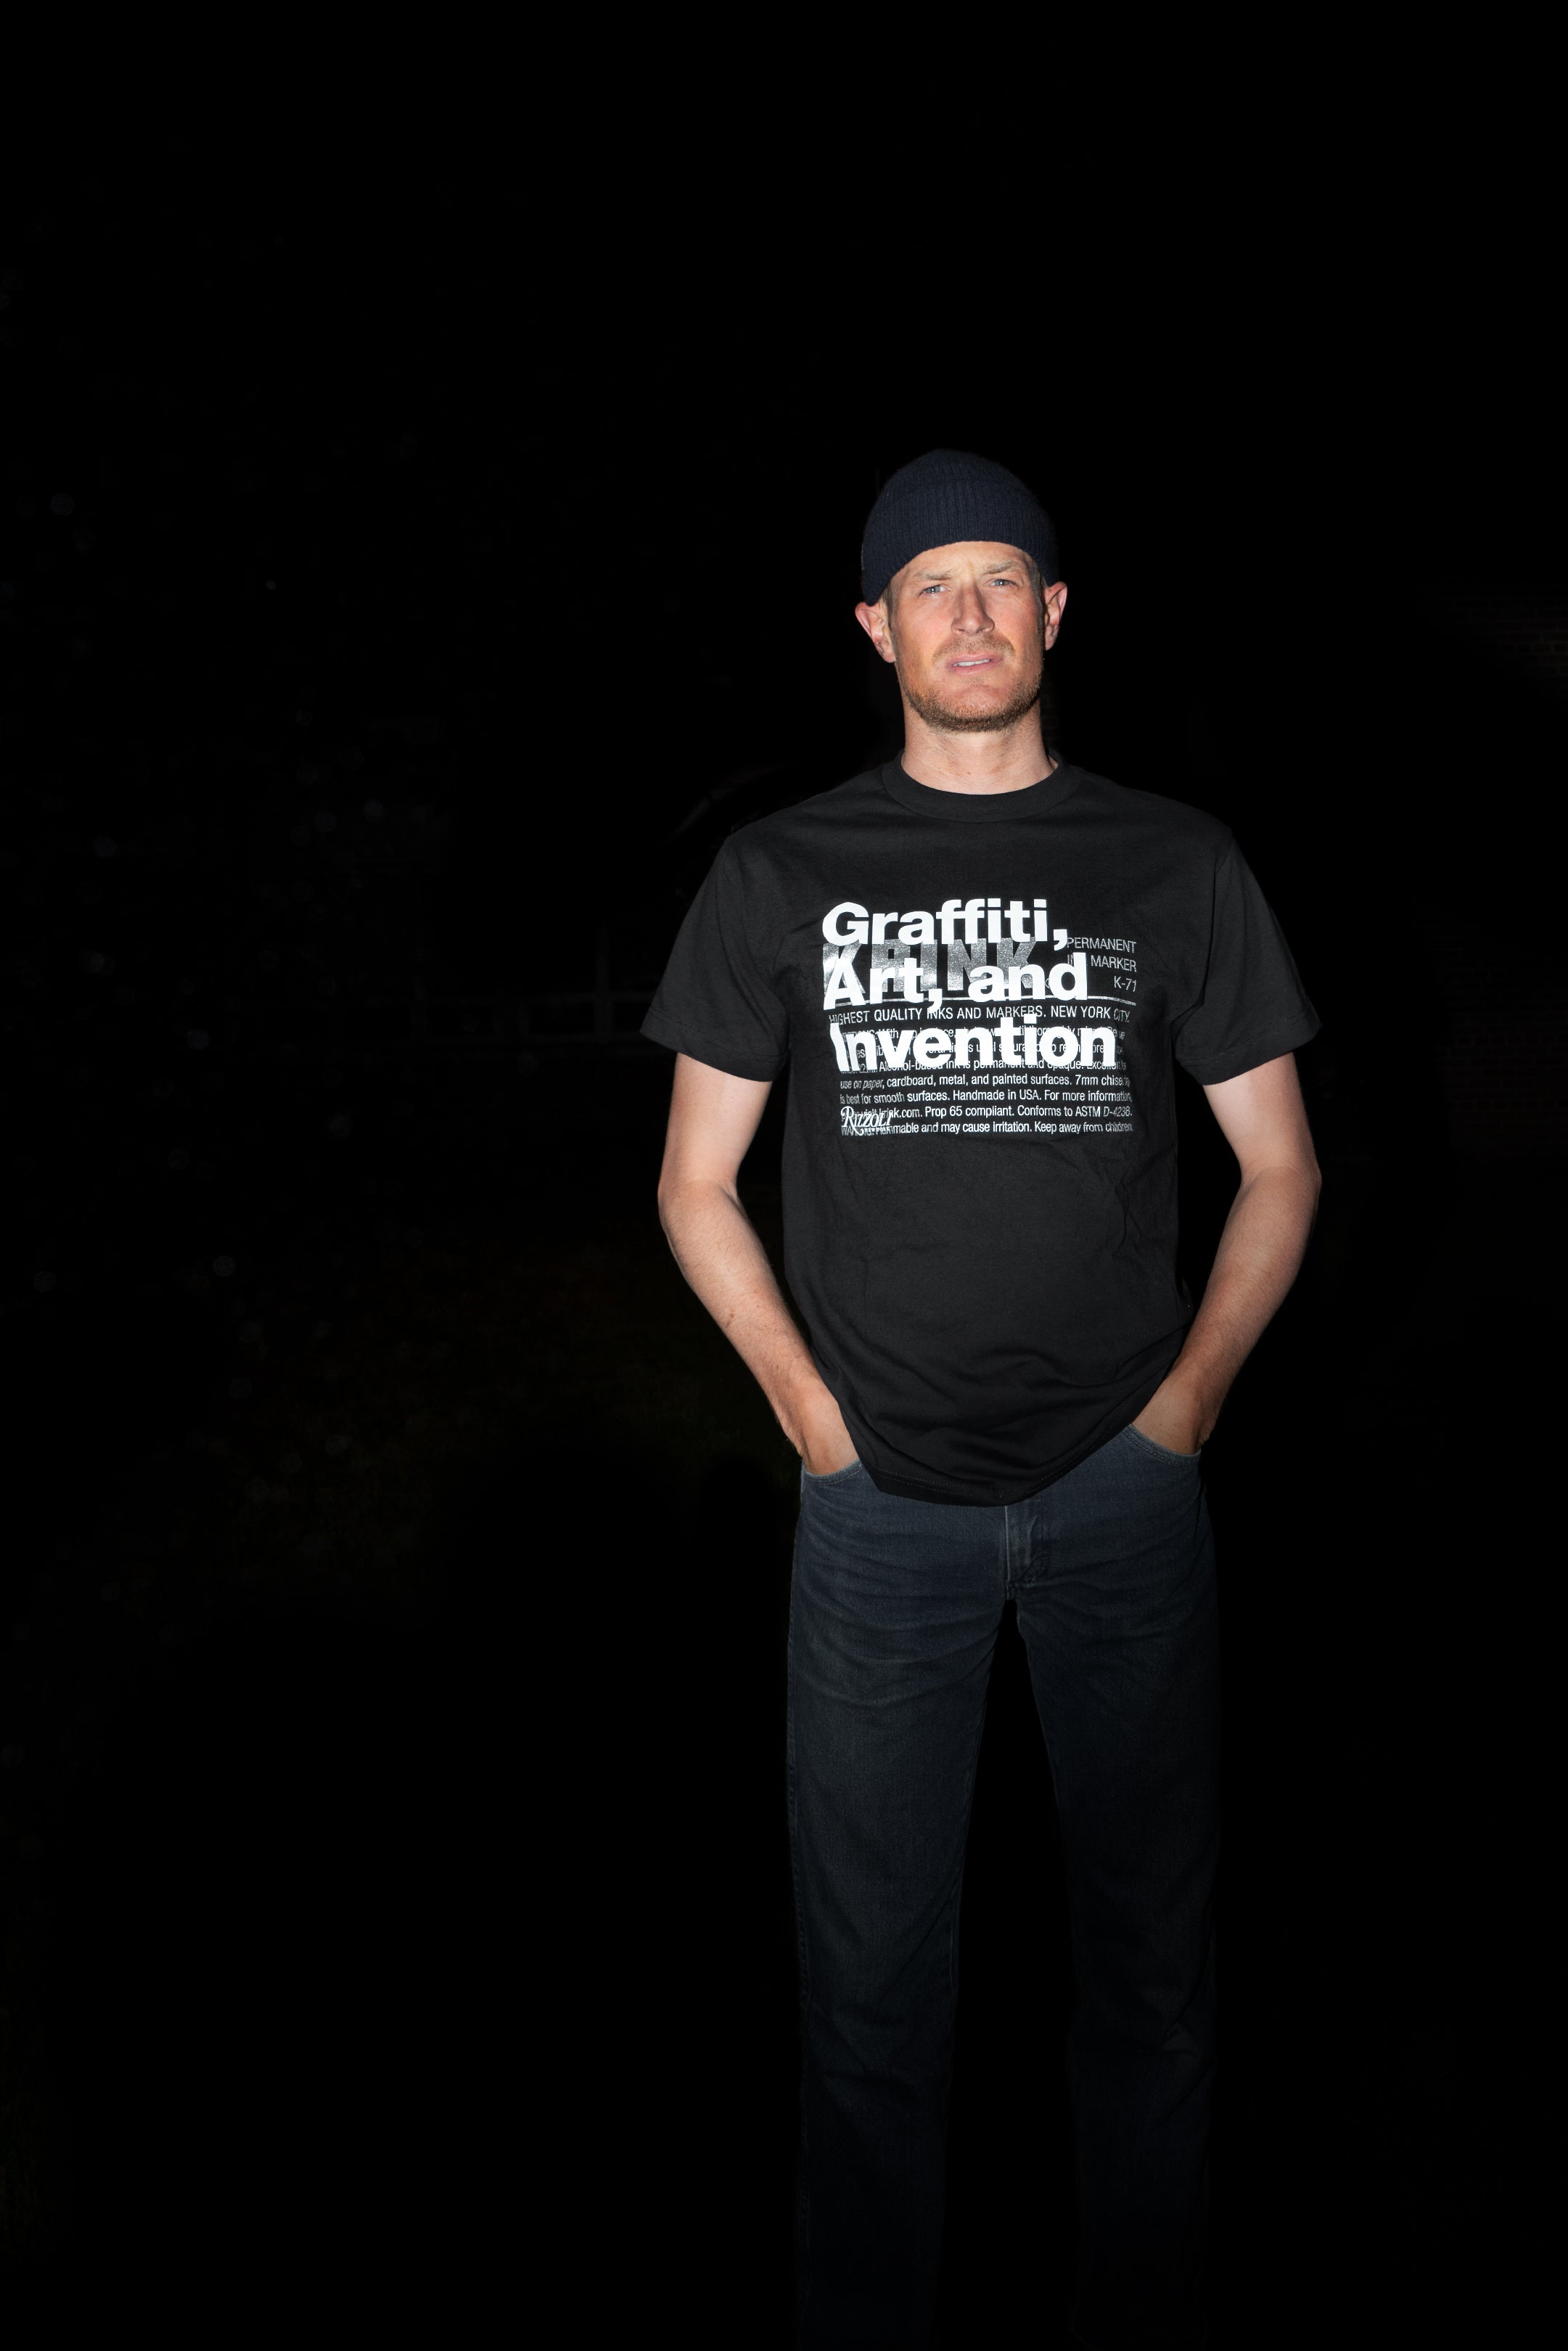 Graffiti, Art, and Invention Tee